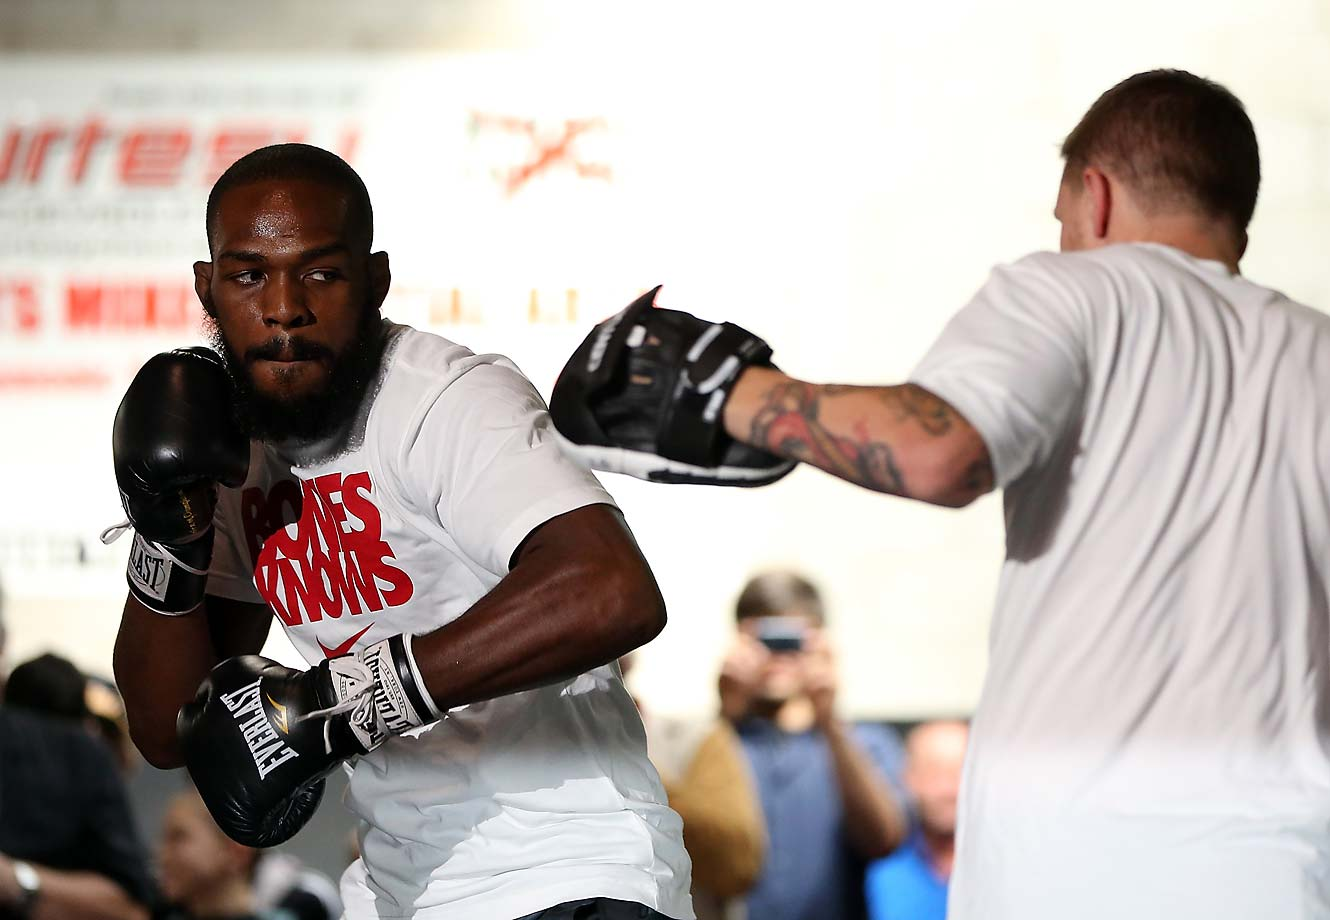 Jones in an open workout prior to UFC 165 where he fought Alexander Gustafsson for the UFC light heavyweight championship.